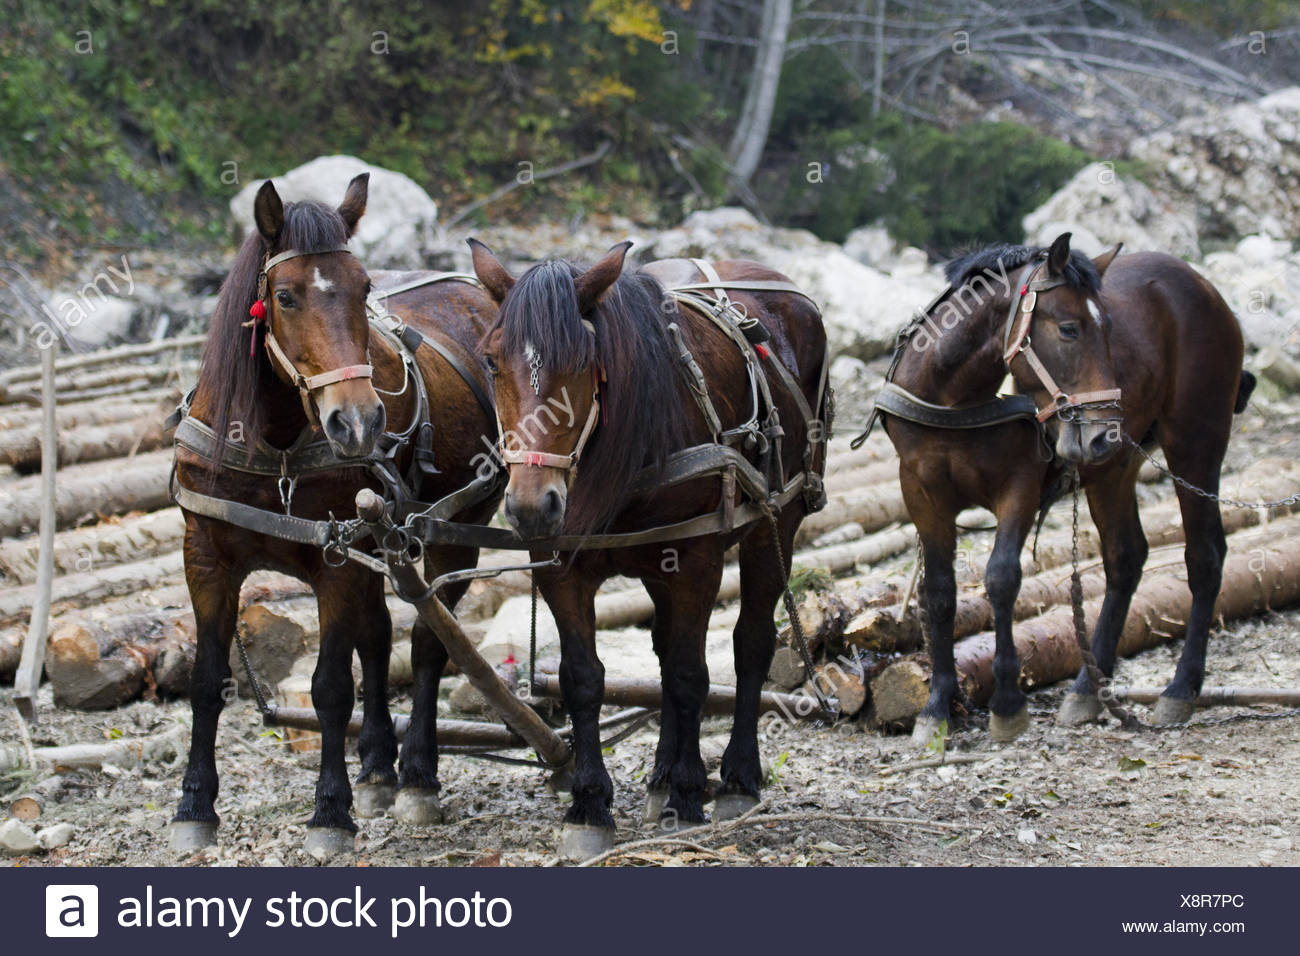 workhorse - Stock Image